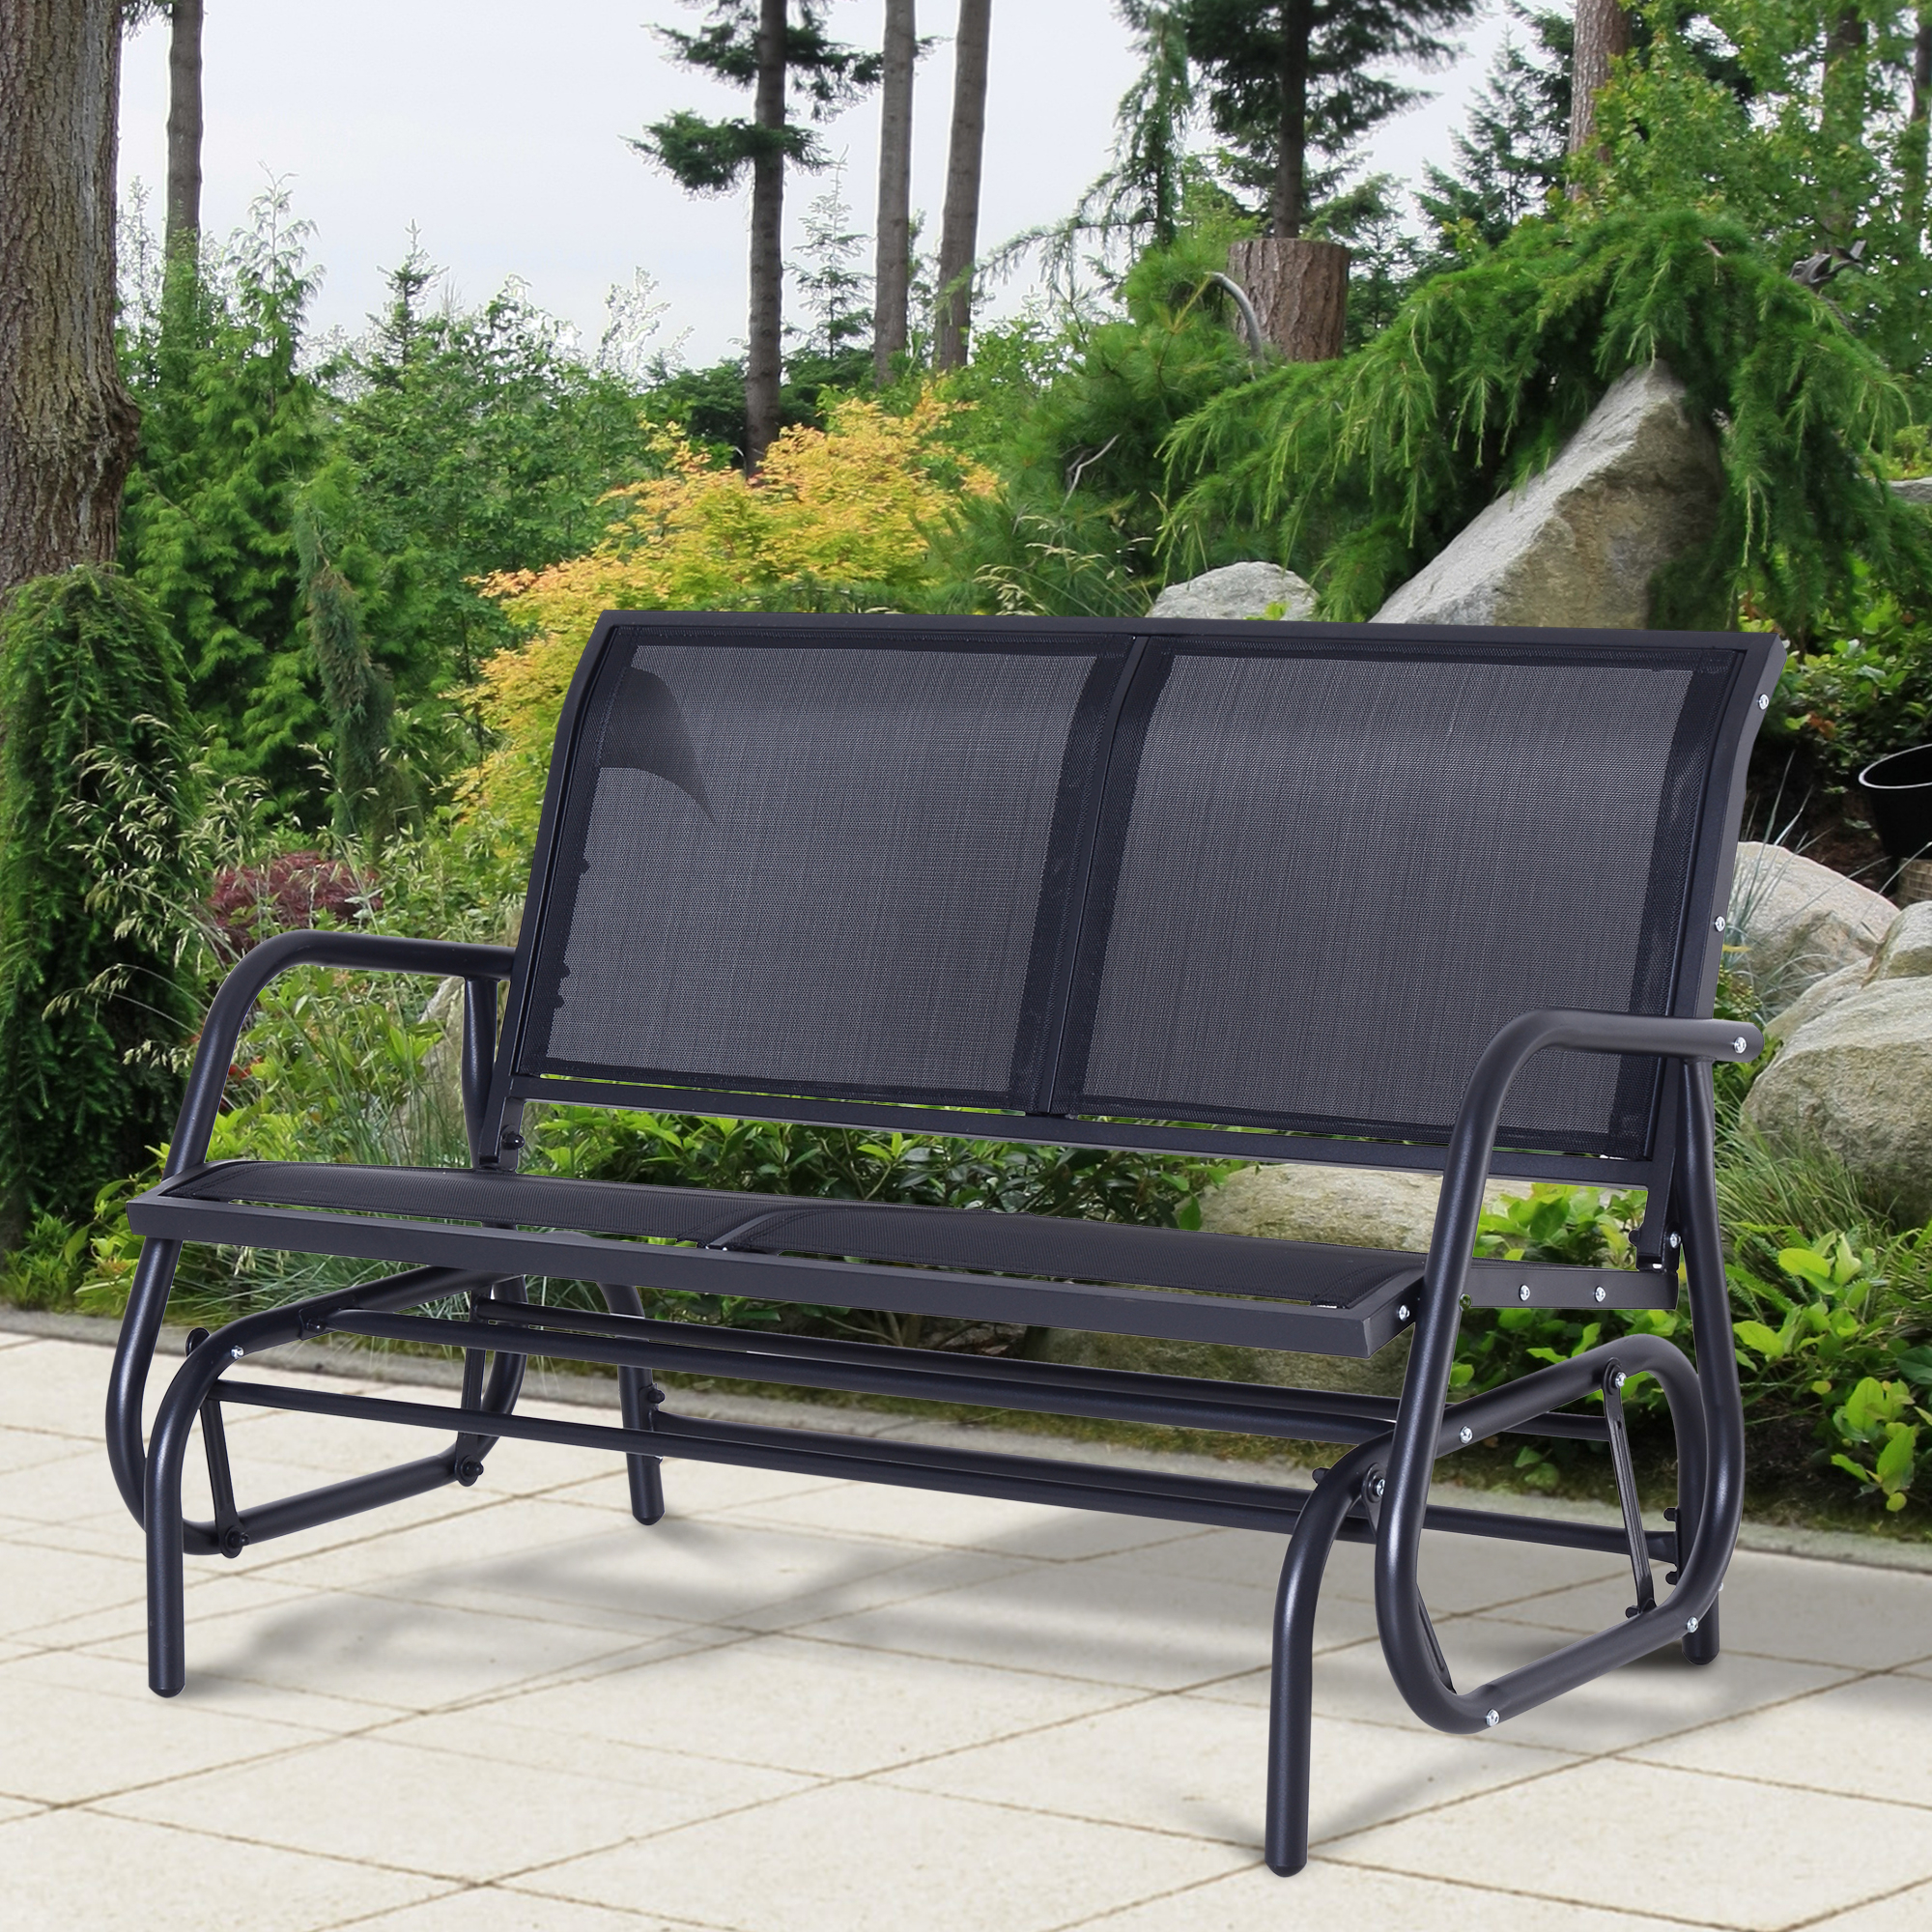 Details About Outsunny Patio Garden Glider Bench 2 Person Double Swing  Chair Rocker Deck Black With Latest 2 Person Black Steel Outdoor Swings (View 11 of 25)